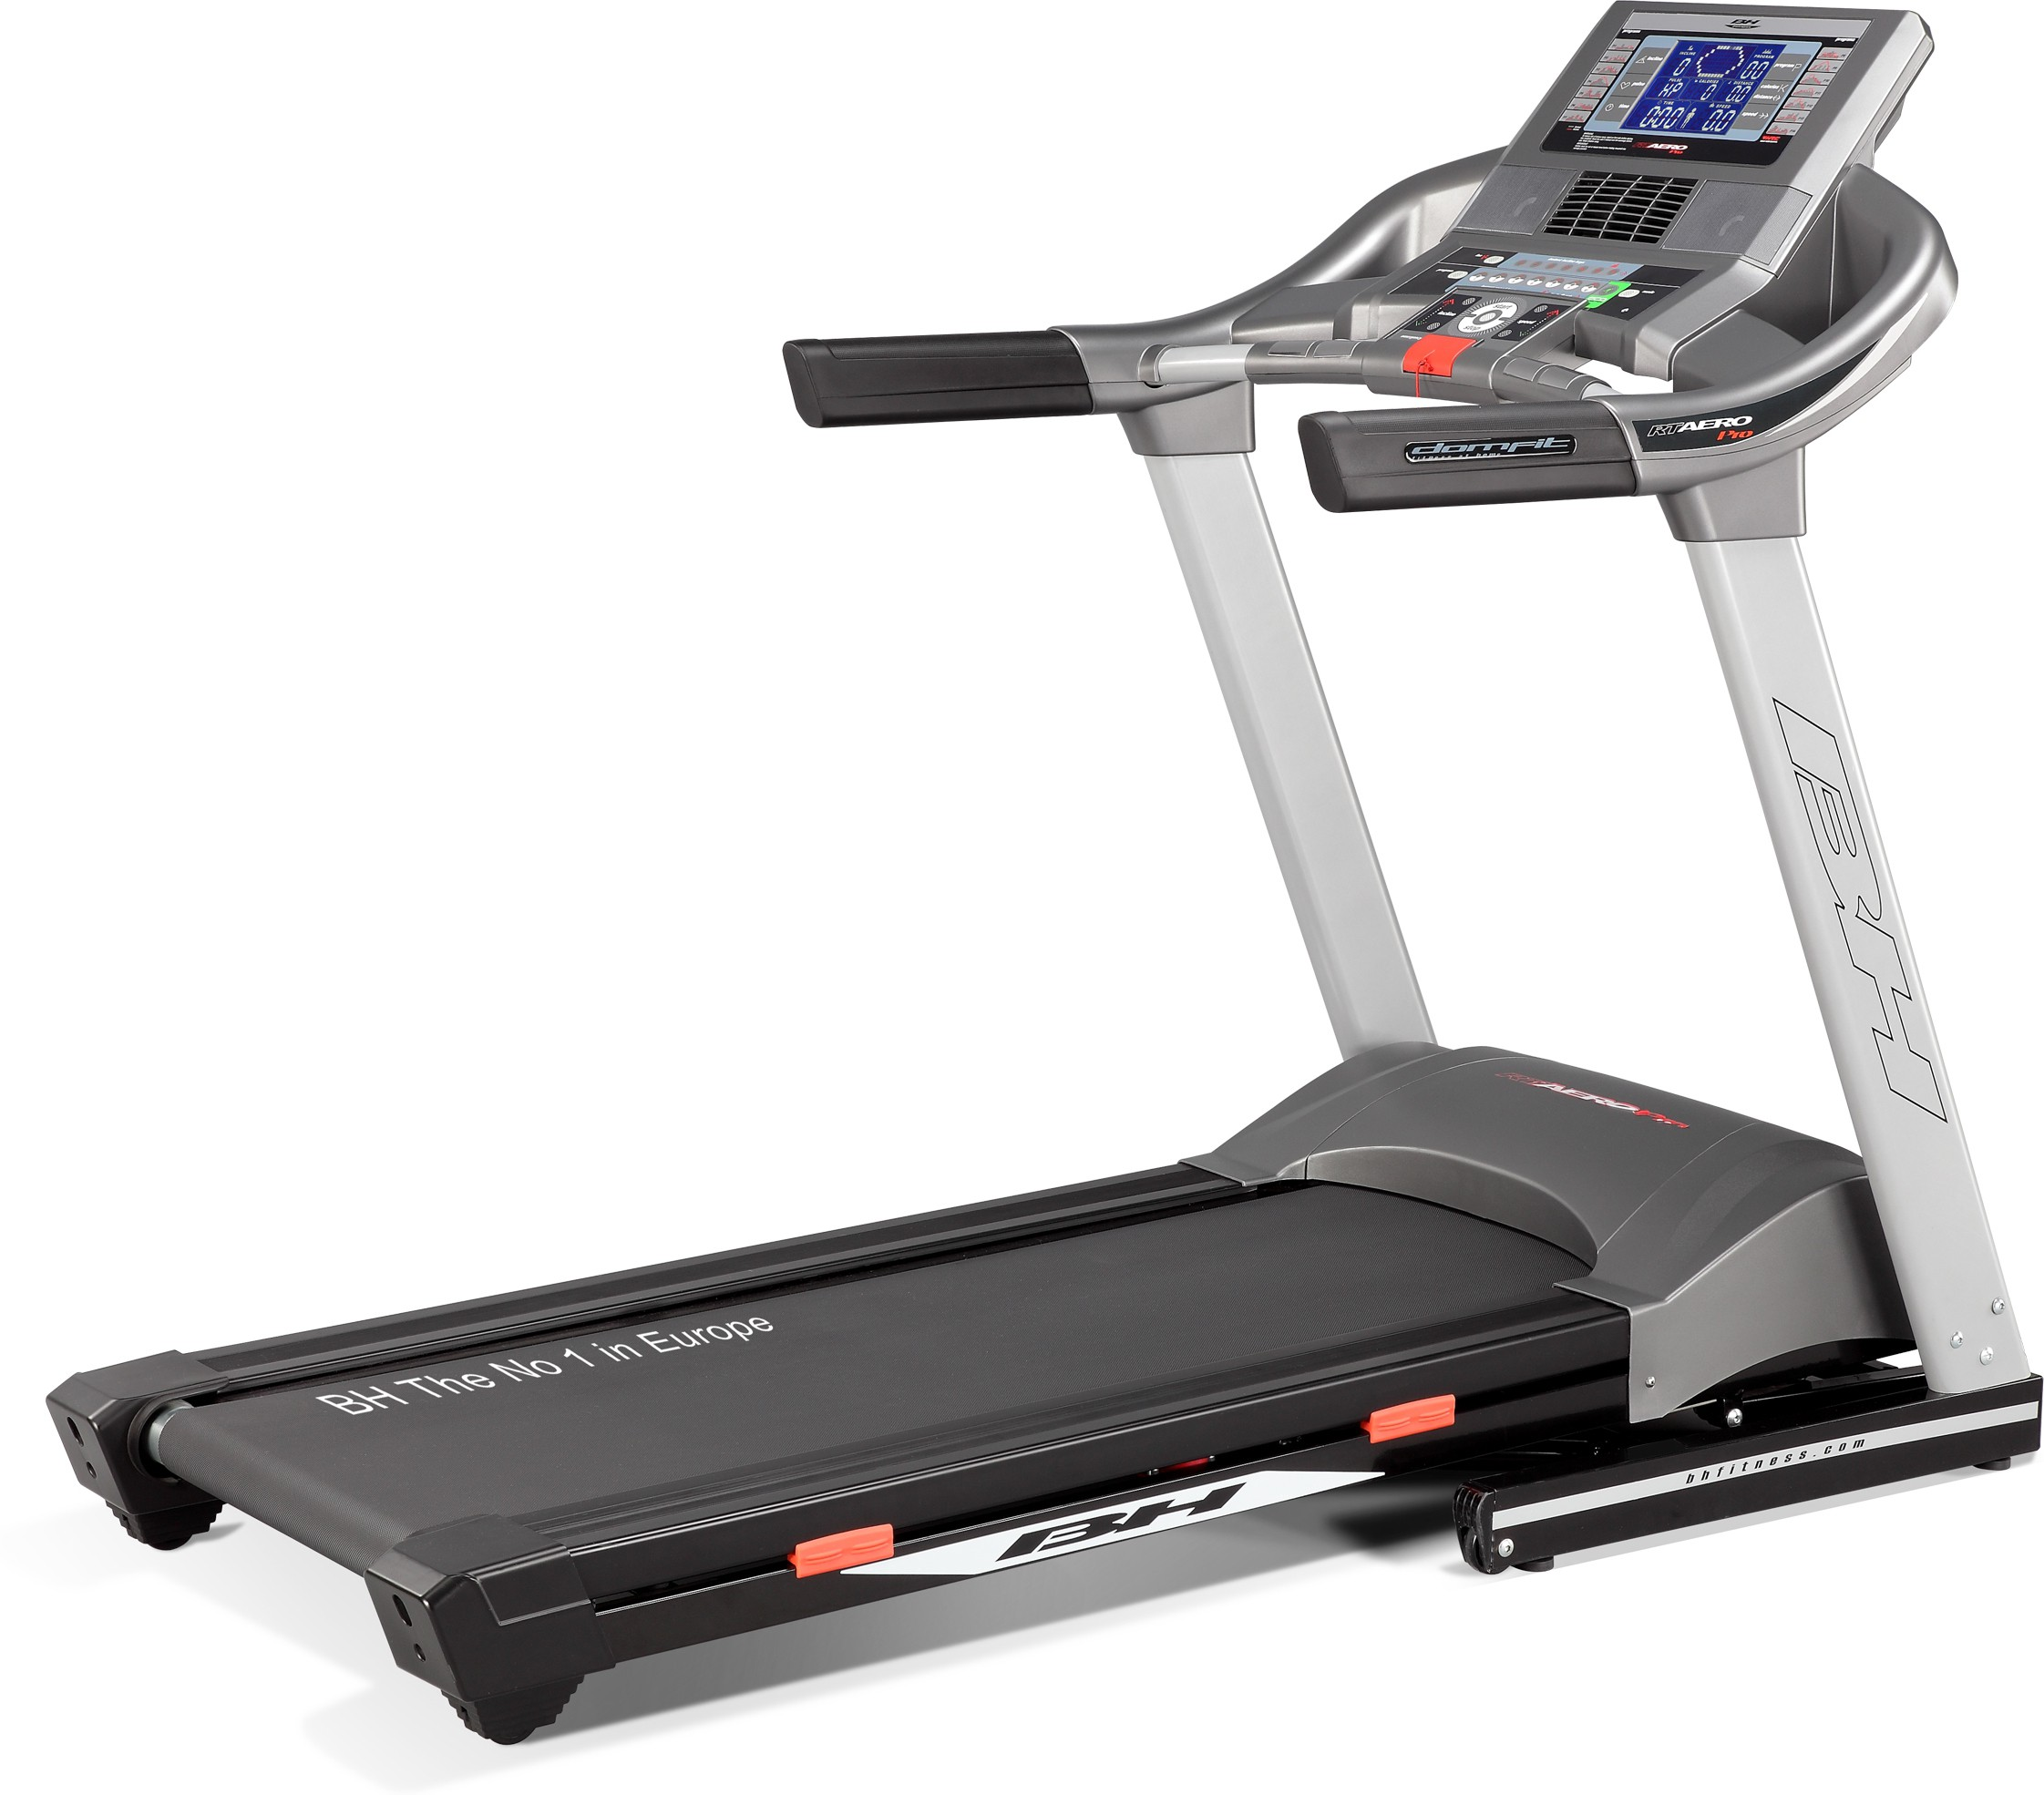 Deals | Min. 30% Off Treadmills, Cross-trainers...